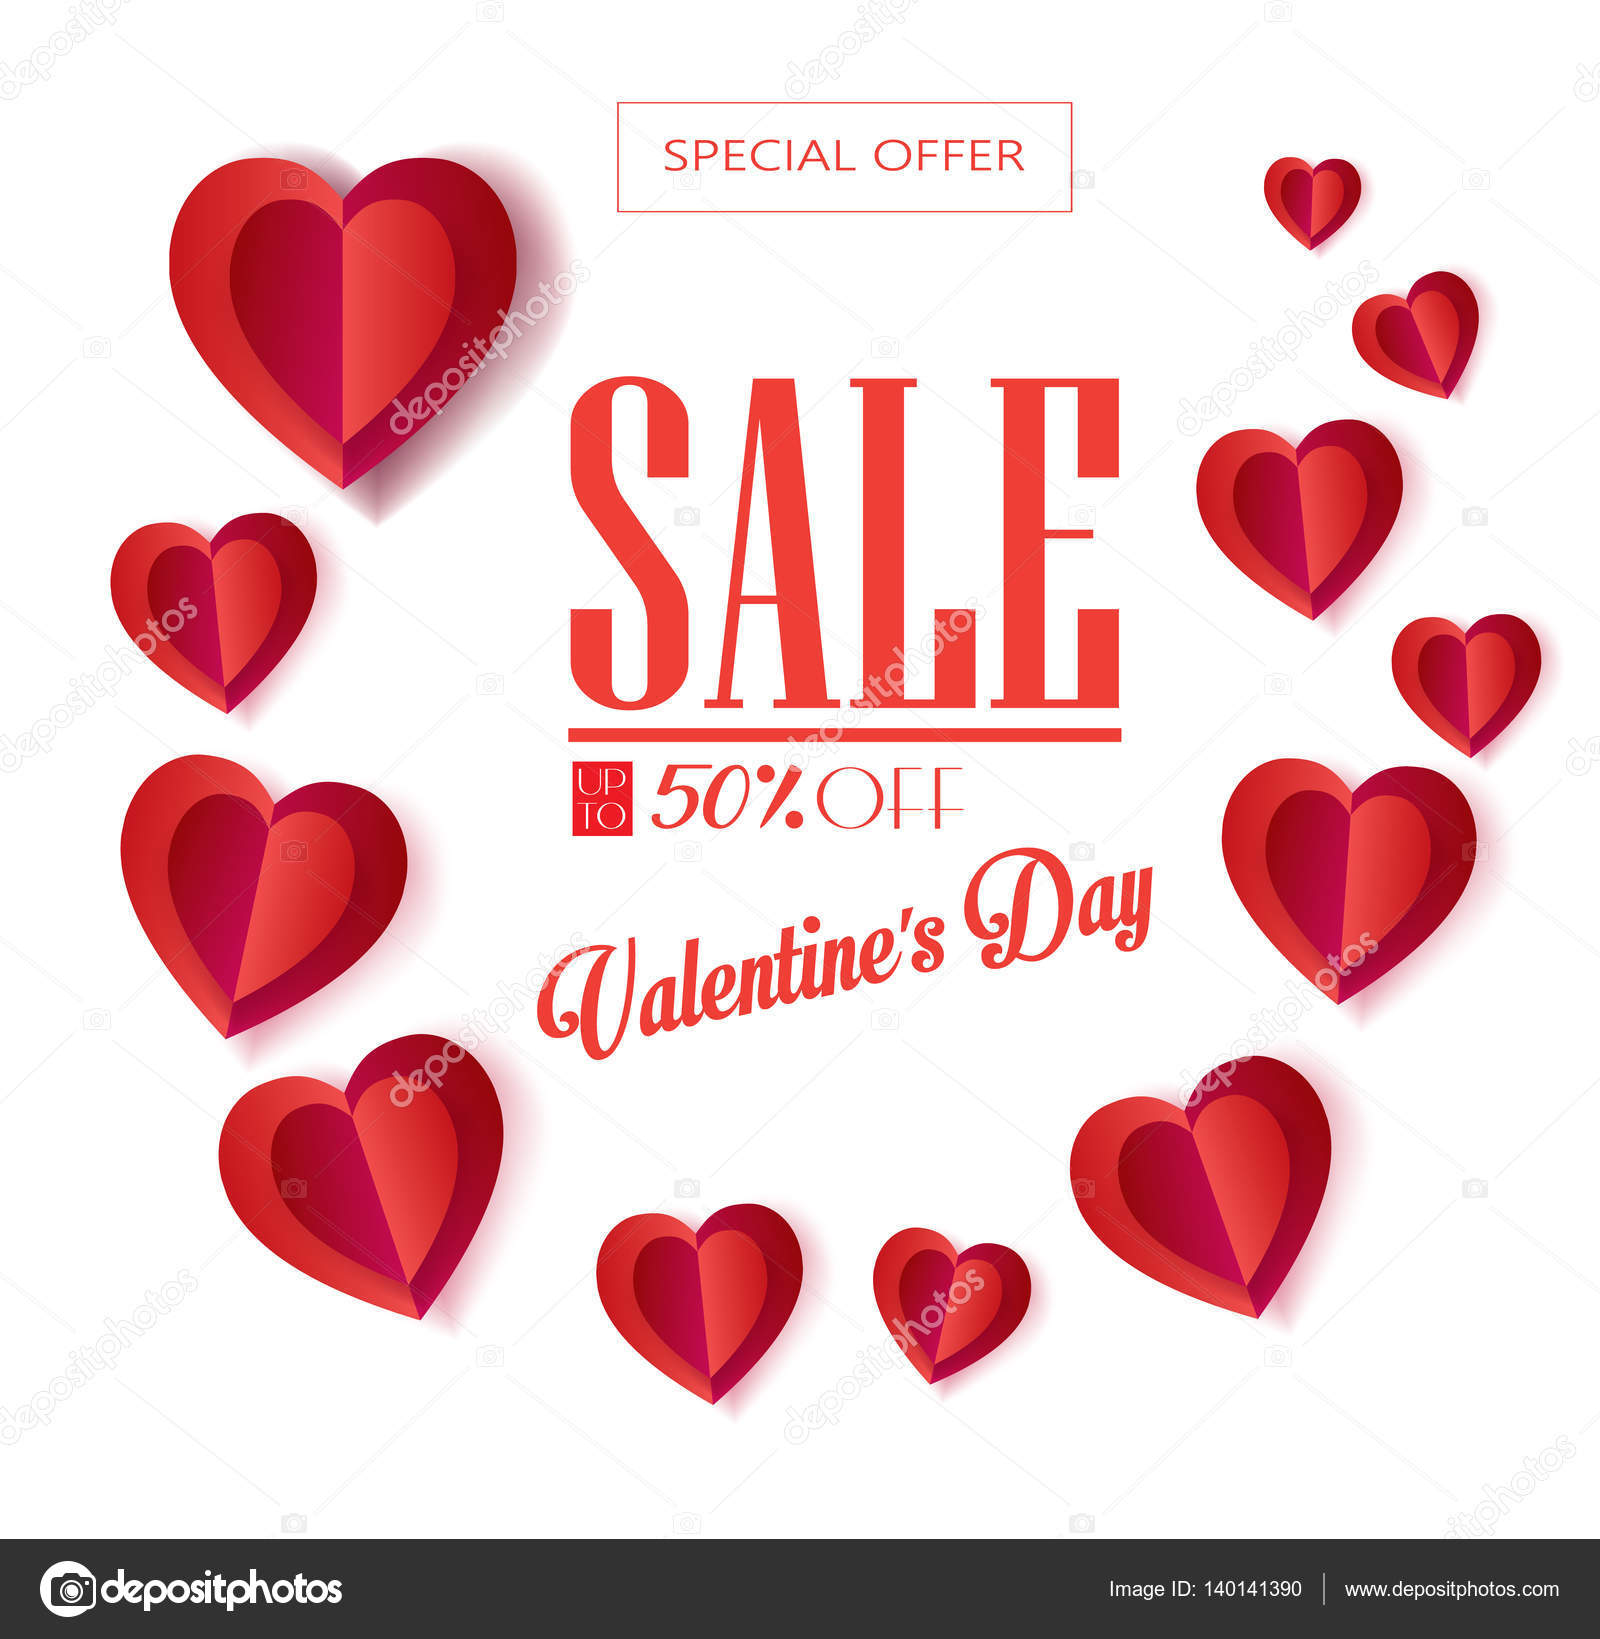 happy valentines day greeting card layout vector template illustration romantic poster with hearts festive background love poster banner e card - Valentines Day E Card